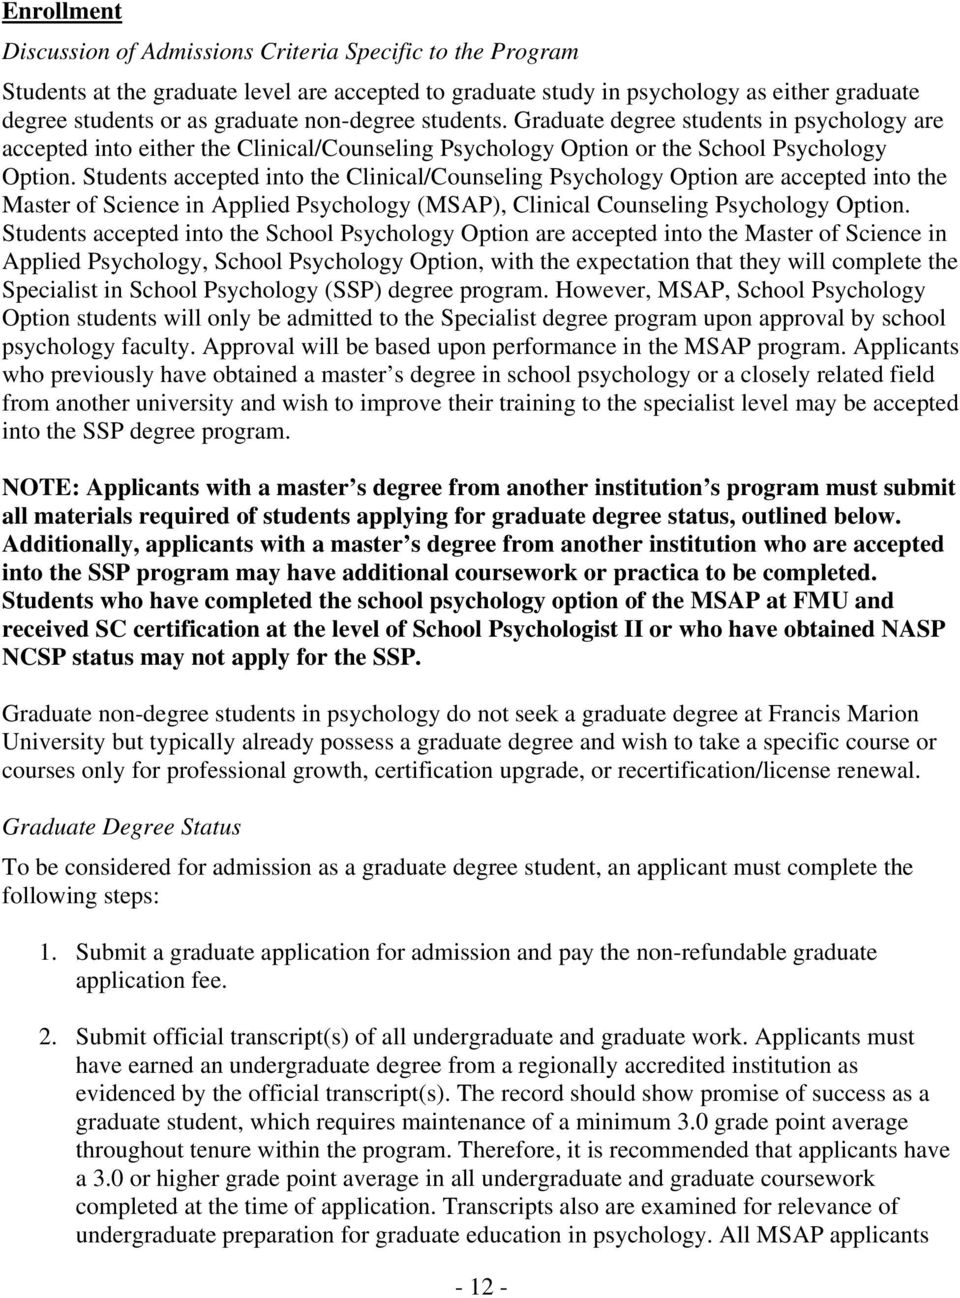 Students accepted into the Clinical/Counseling Psychology Option are accepted into the Master of Science in Applied Psychology (MSAP), Clinical Counseling Psychology Option.